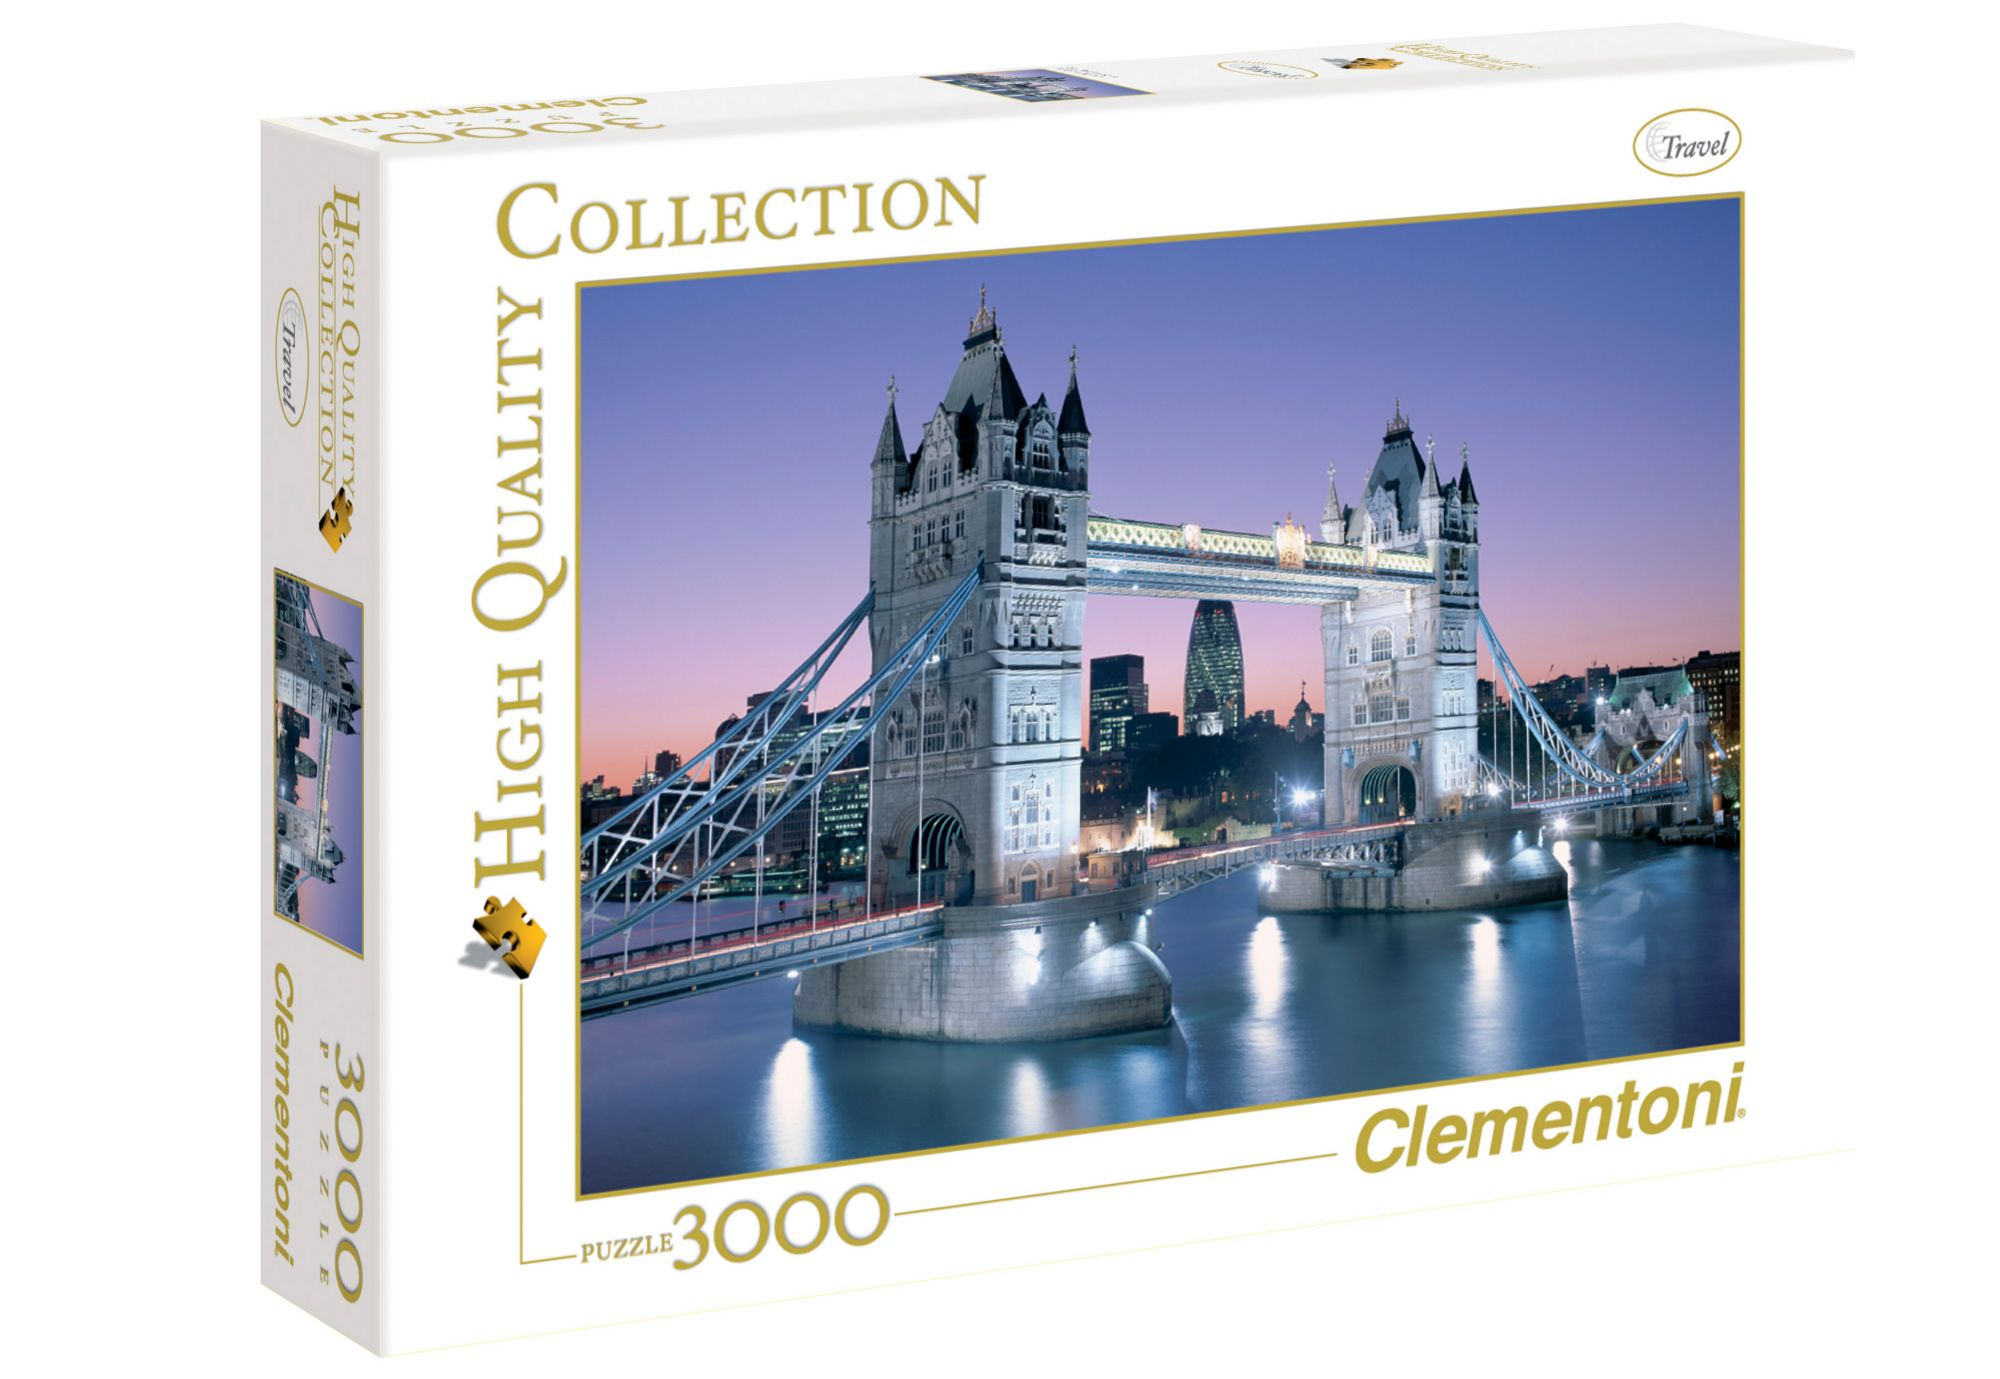 CLEMENTONI Clementoni Puzzle, 3000 Teile, »Tower Bridge«